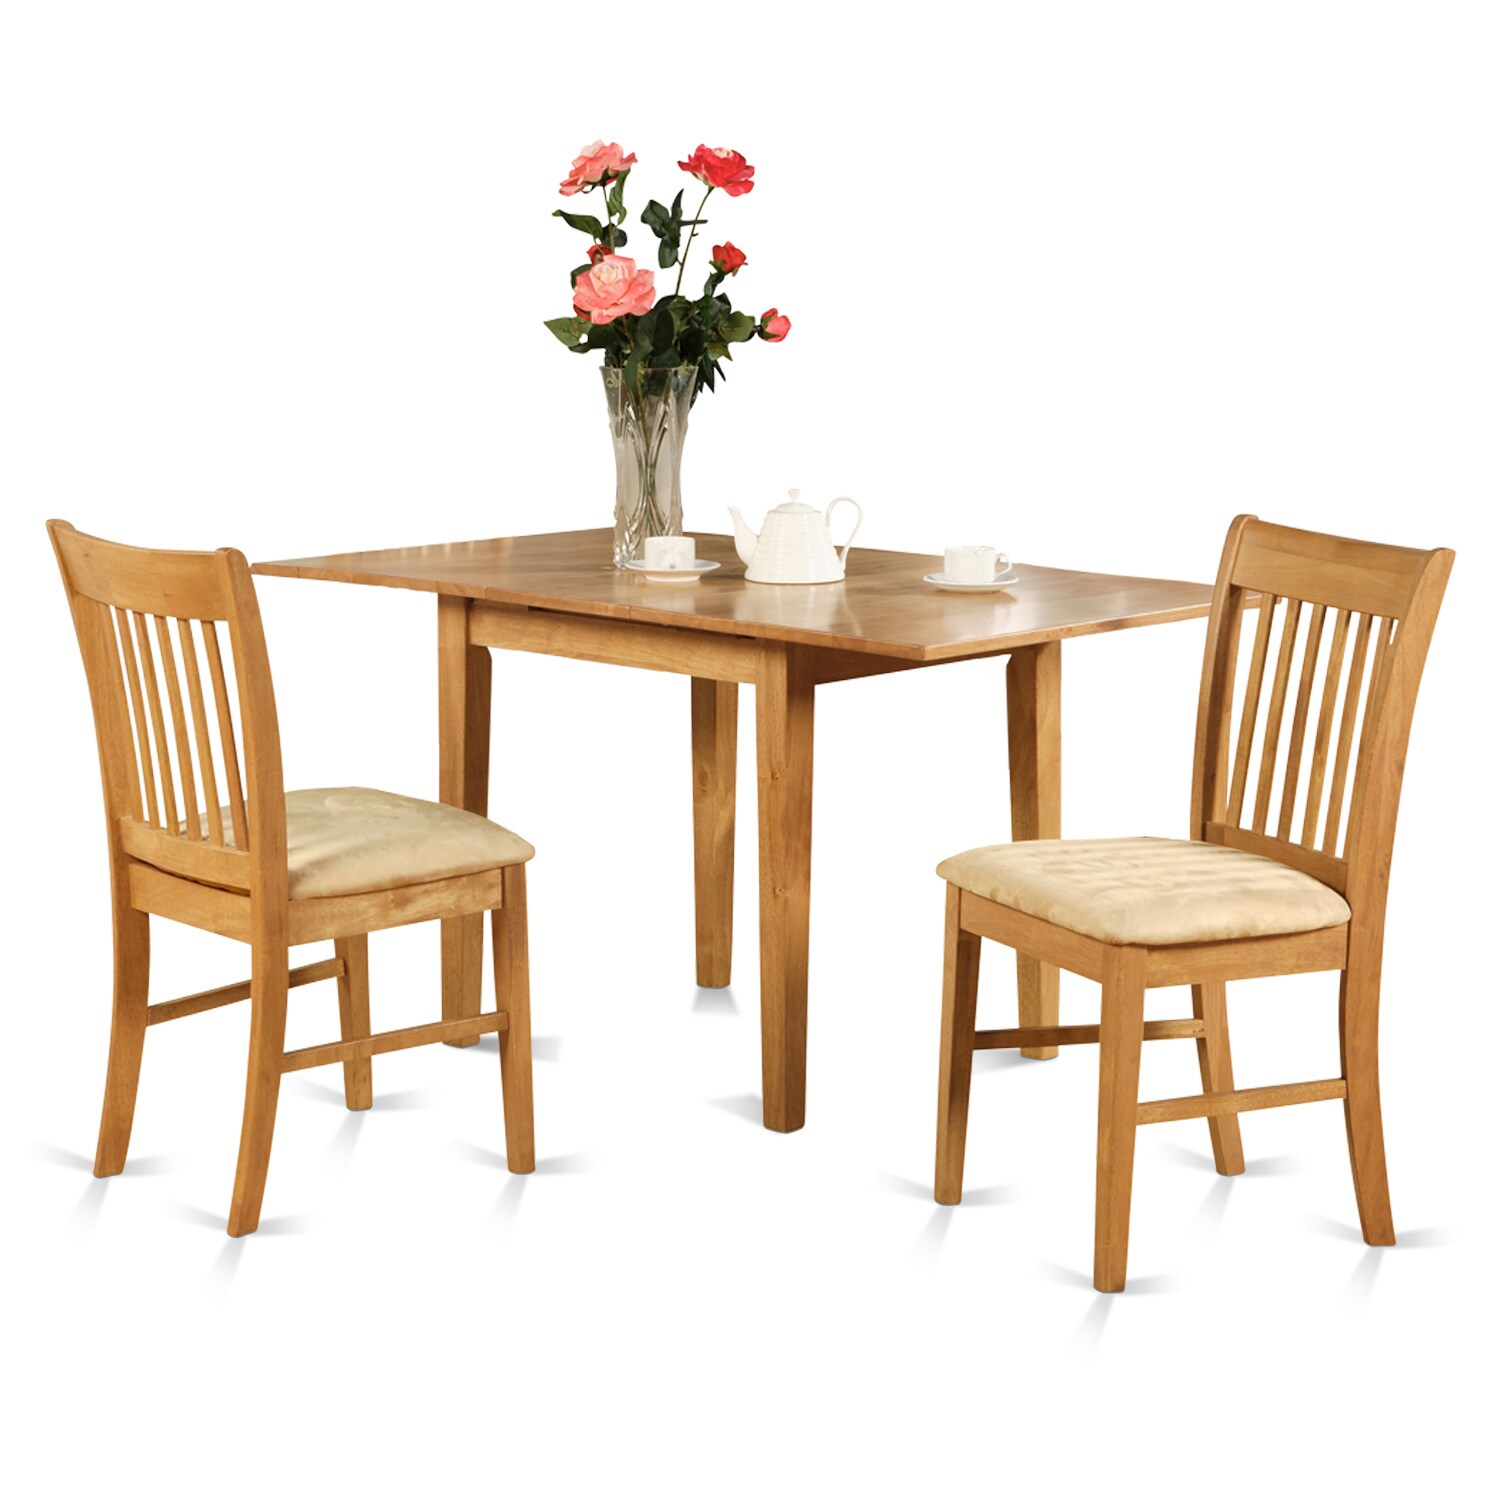 Oak Small Kitchen Table and 2 Kitchen Chairs 3-piece Dini...